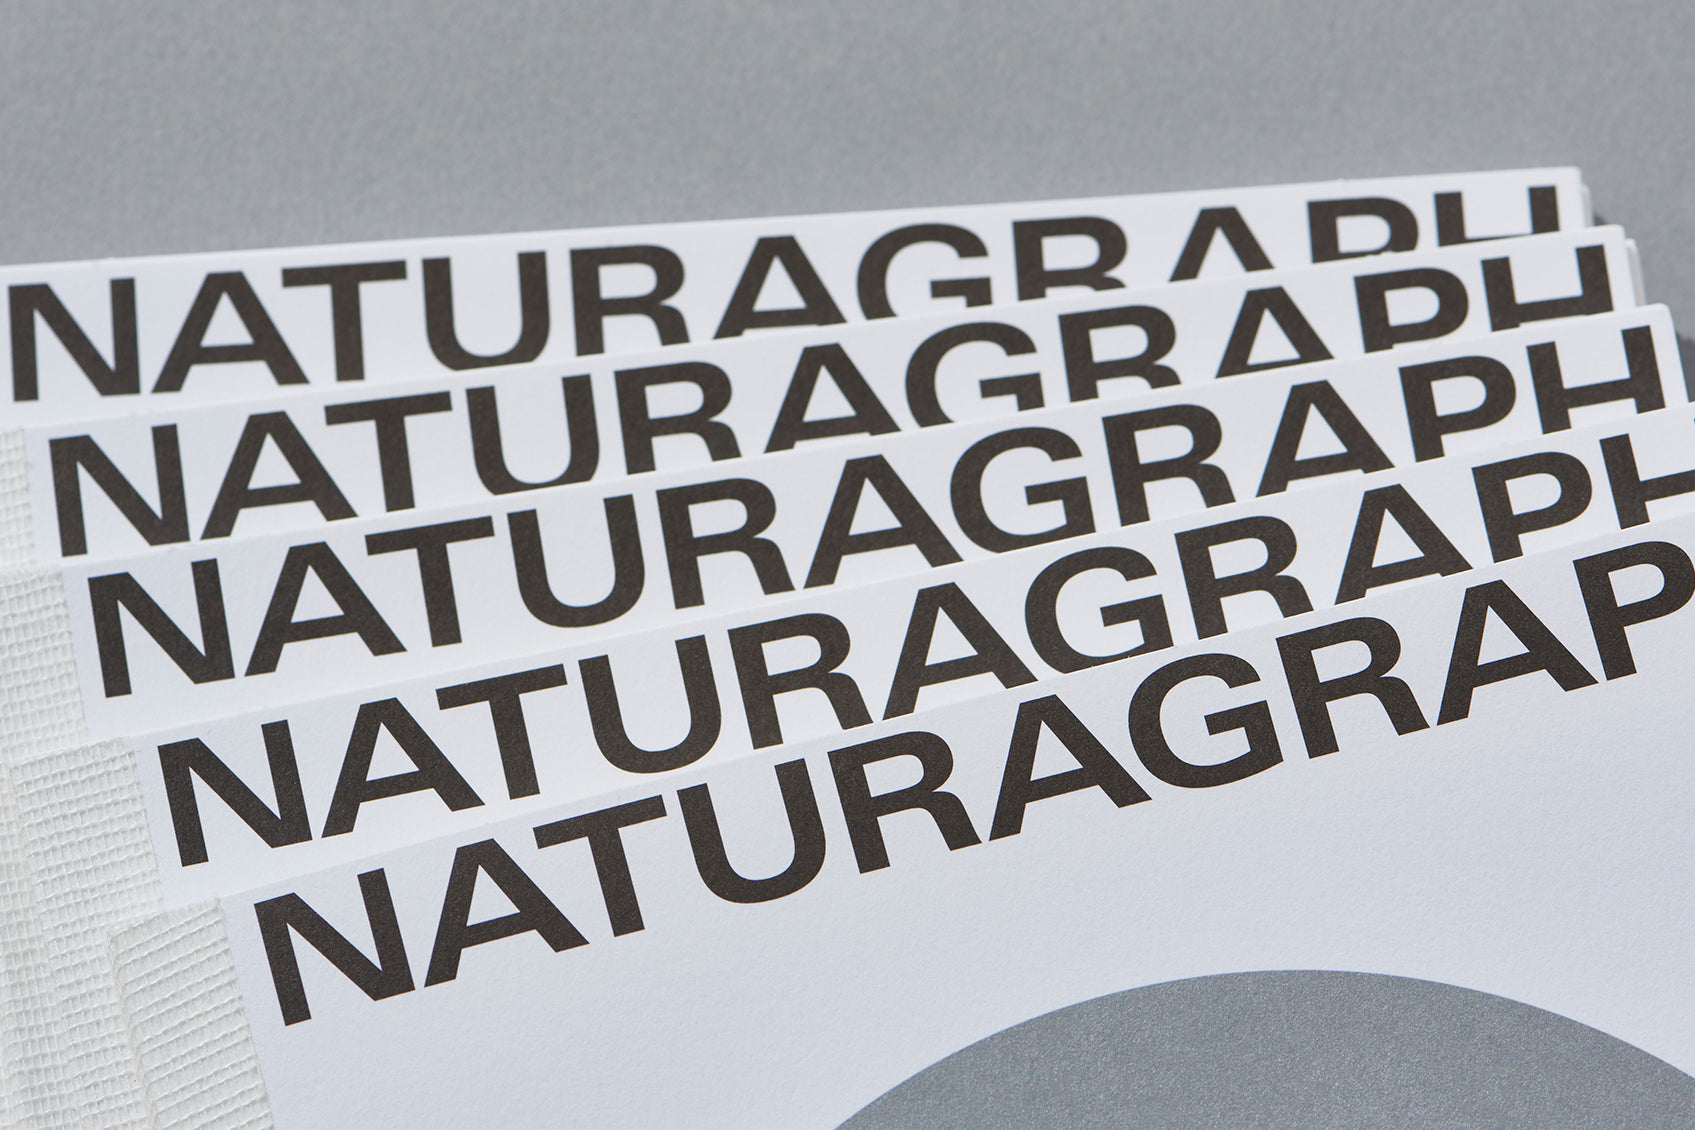 Nippon Design Center: Naturagraph